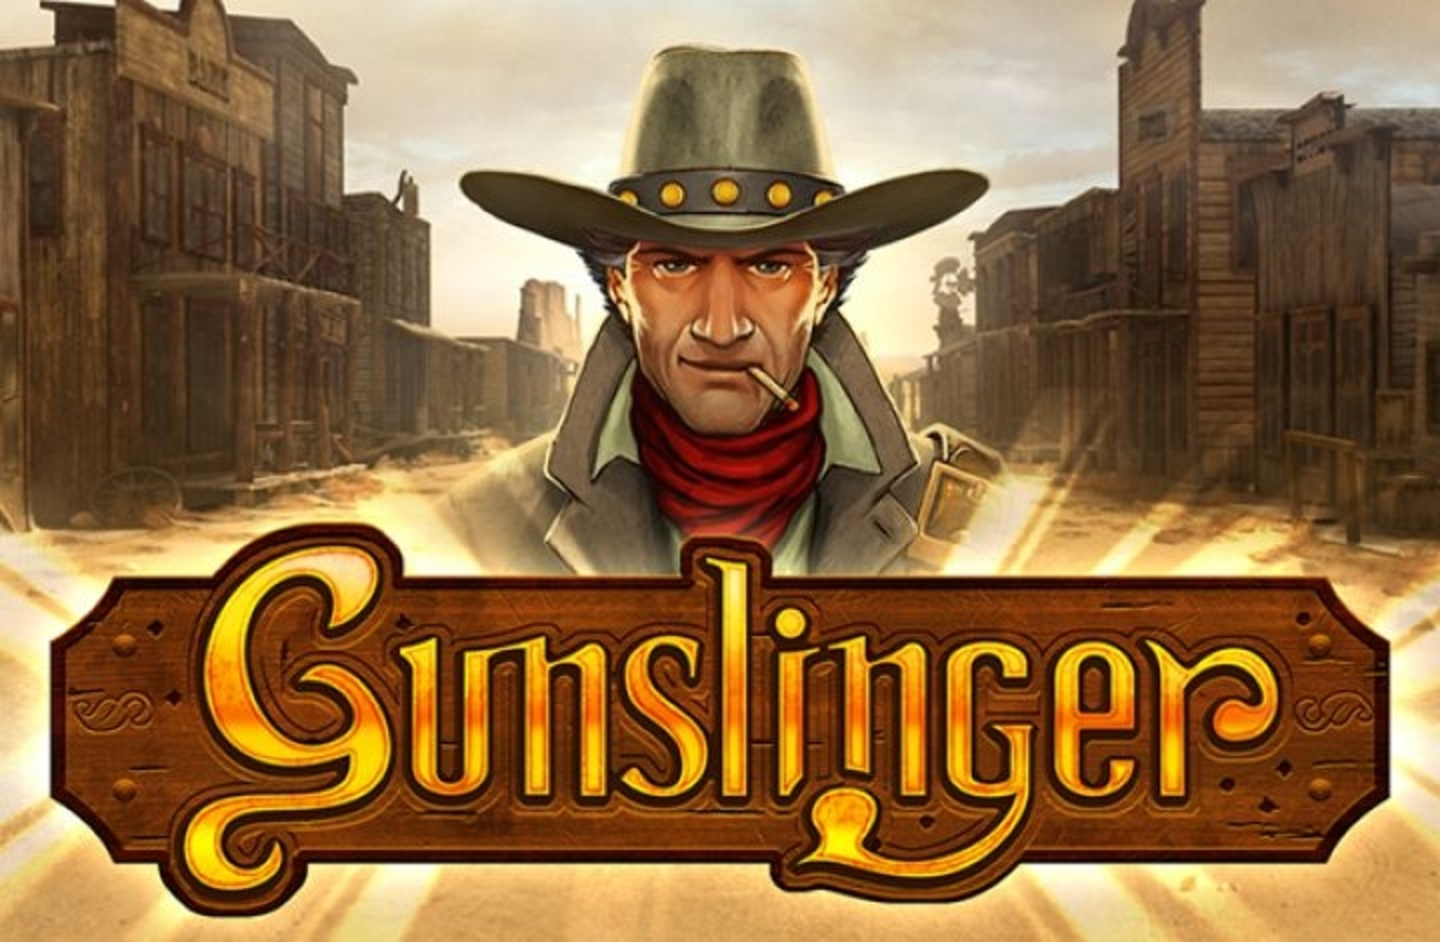 Se Gunslinger (Play'n Go) Online Slot Demo Game, Playn GO